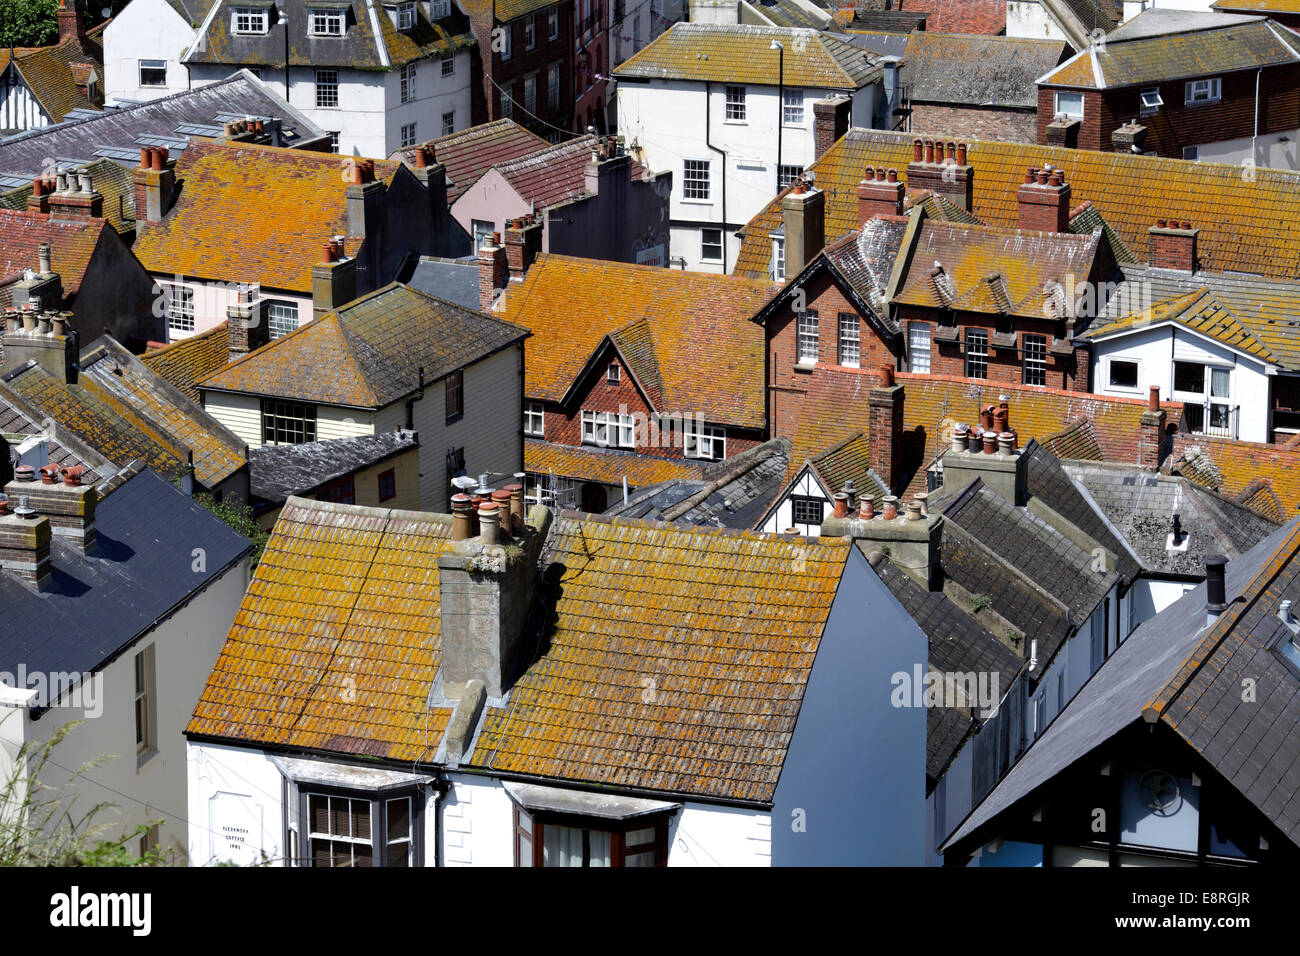 Lichens growing on roof tiles turn house roofs an untypical glowing tawny colour. Hastings Old Town, East Sussex. - Stock Image